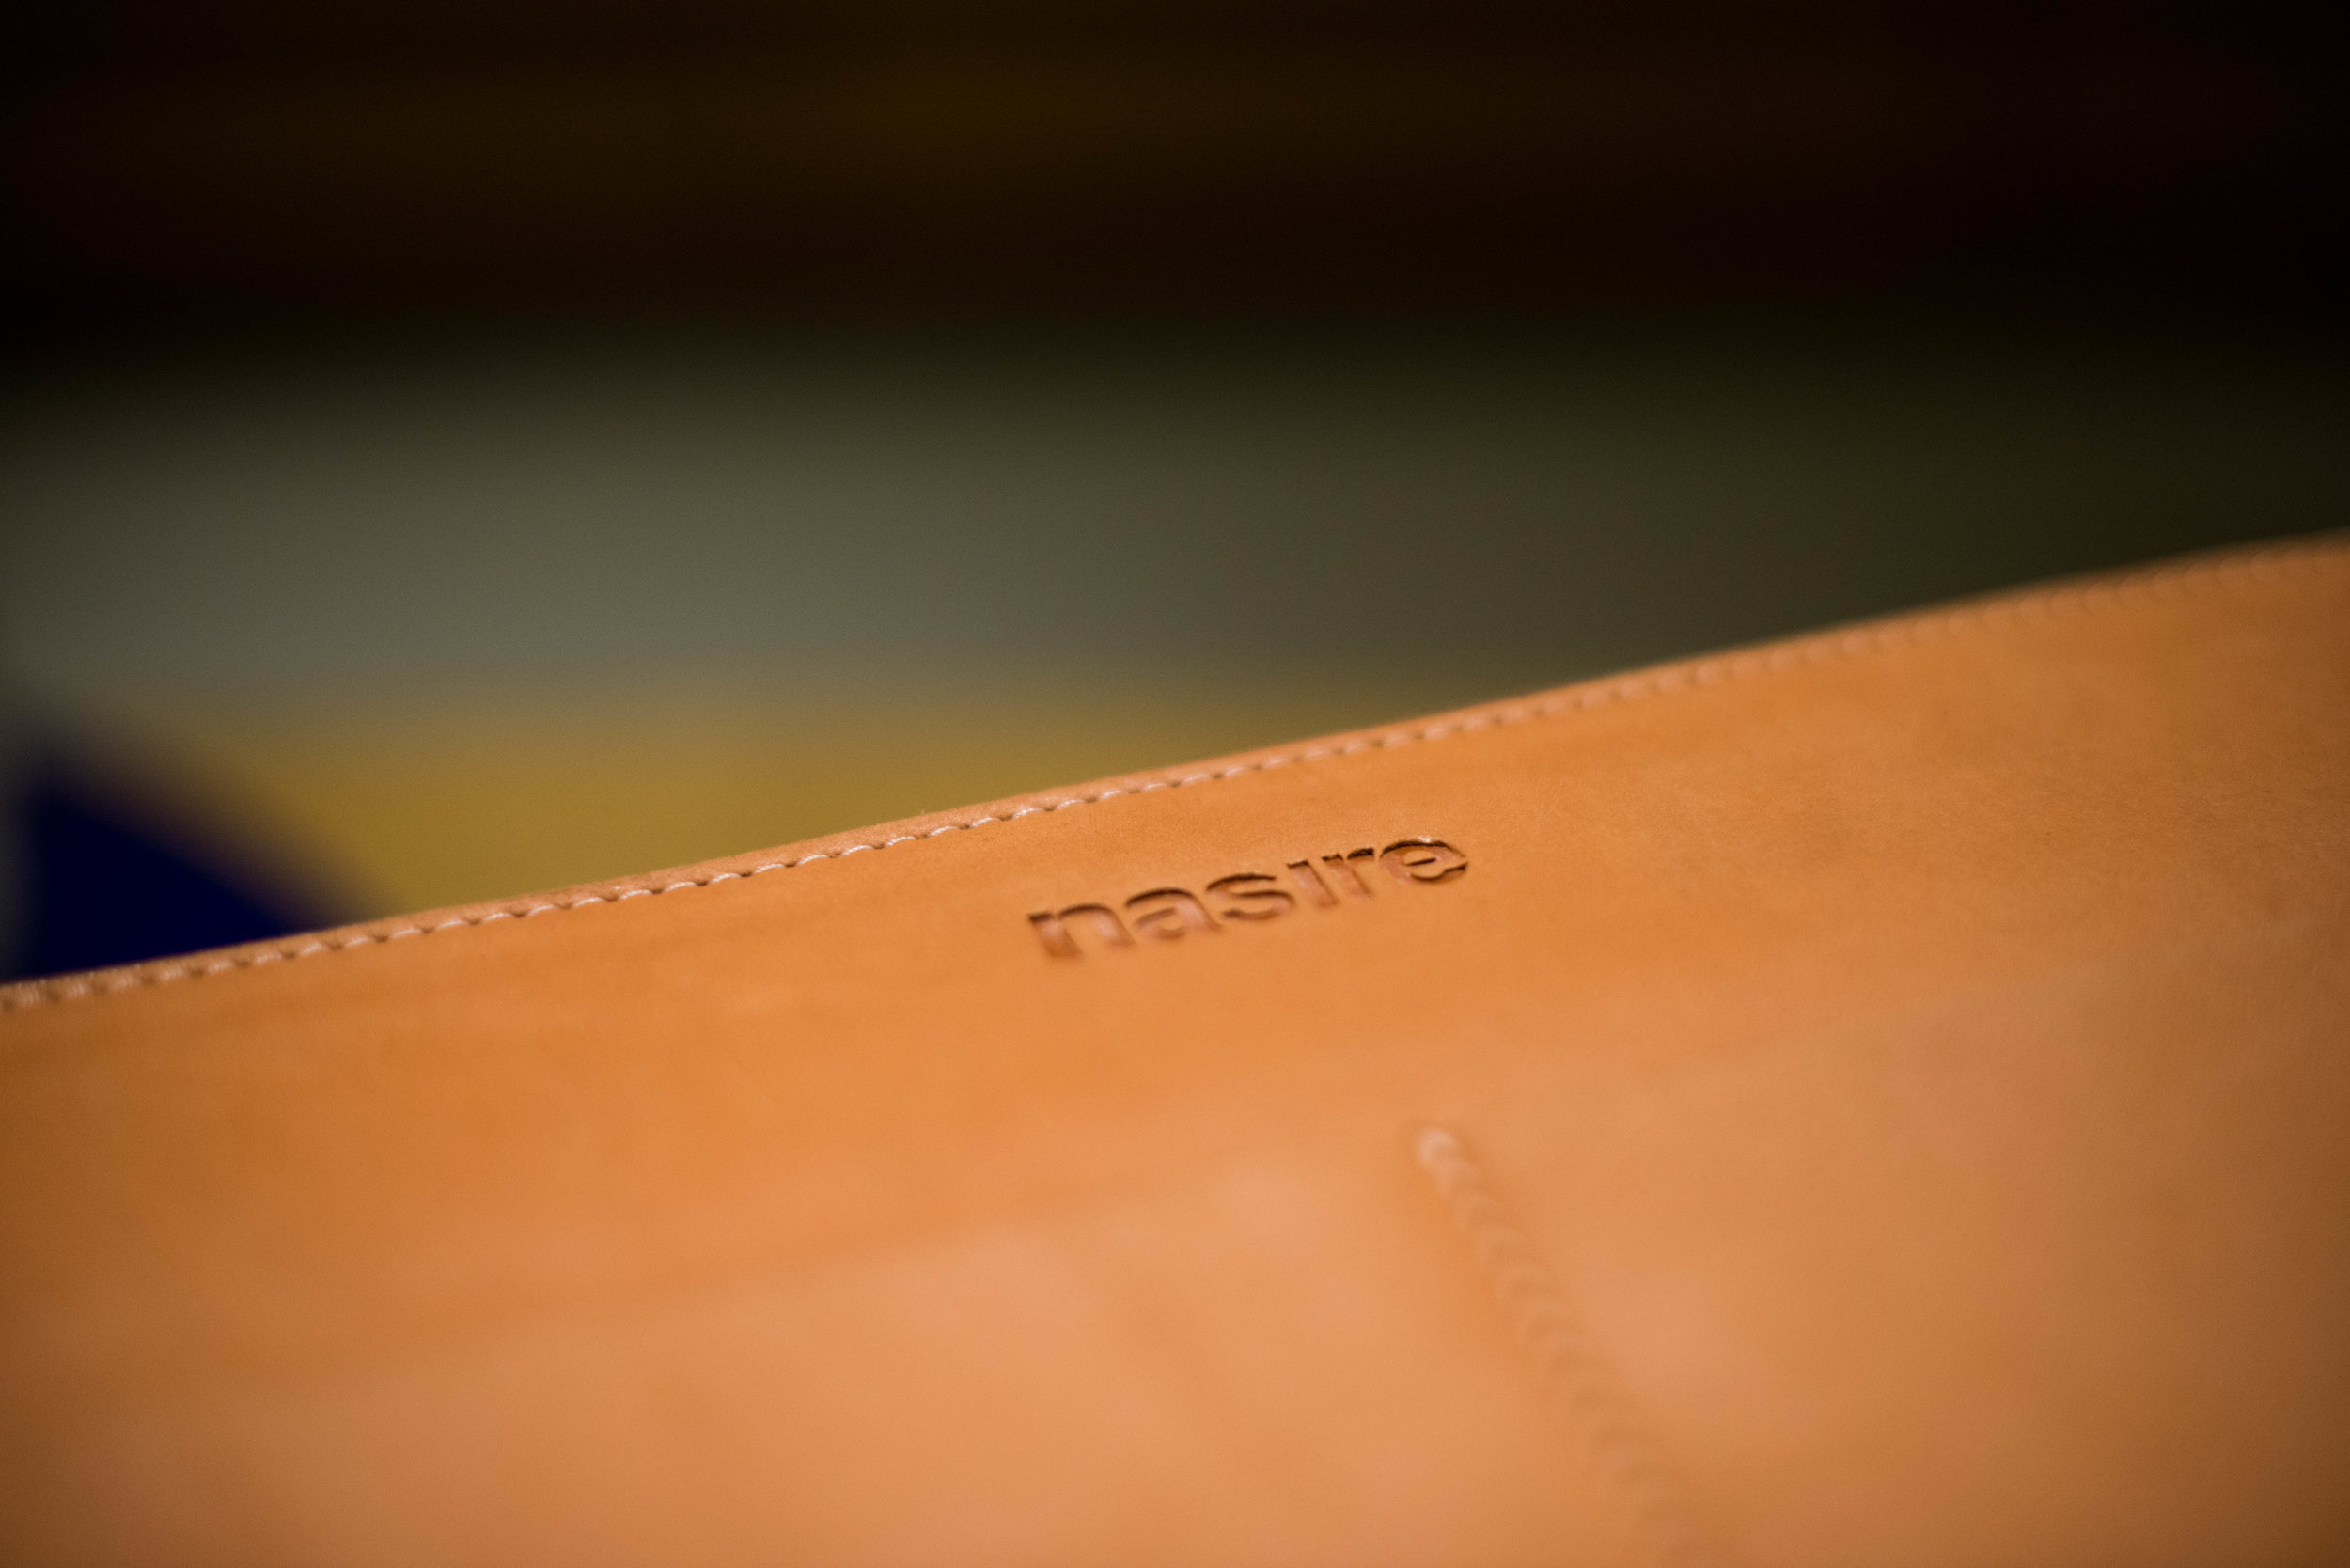 Quality Handmade Leather Goods from Morocco #NASIRE